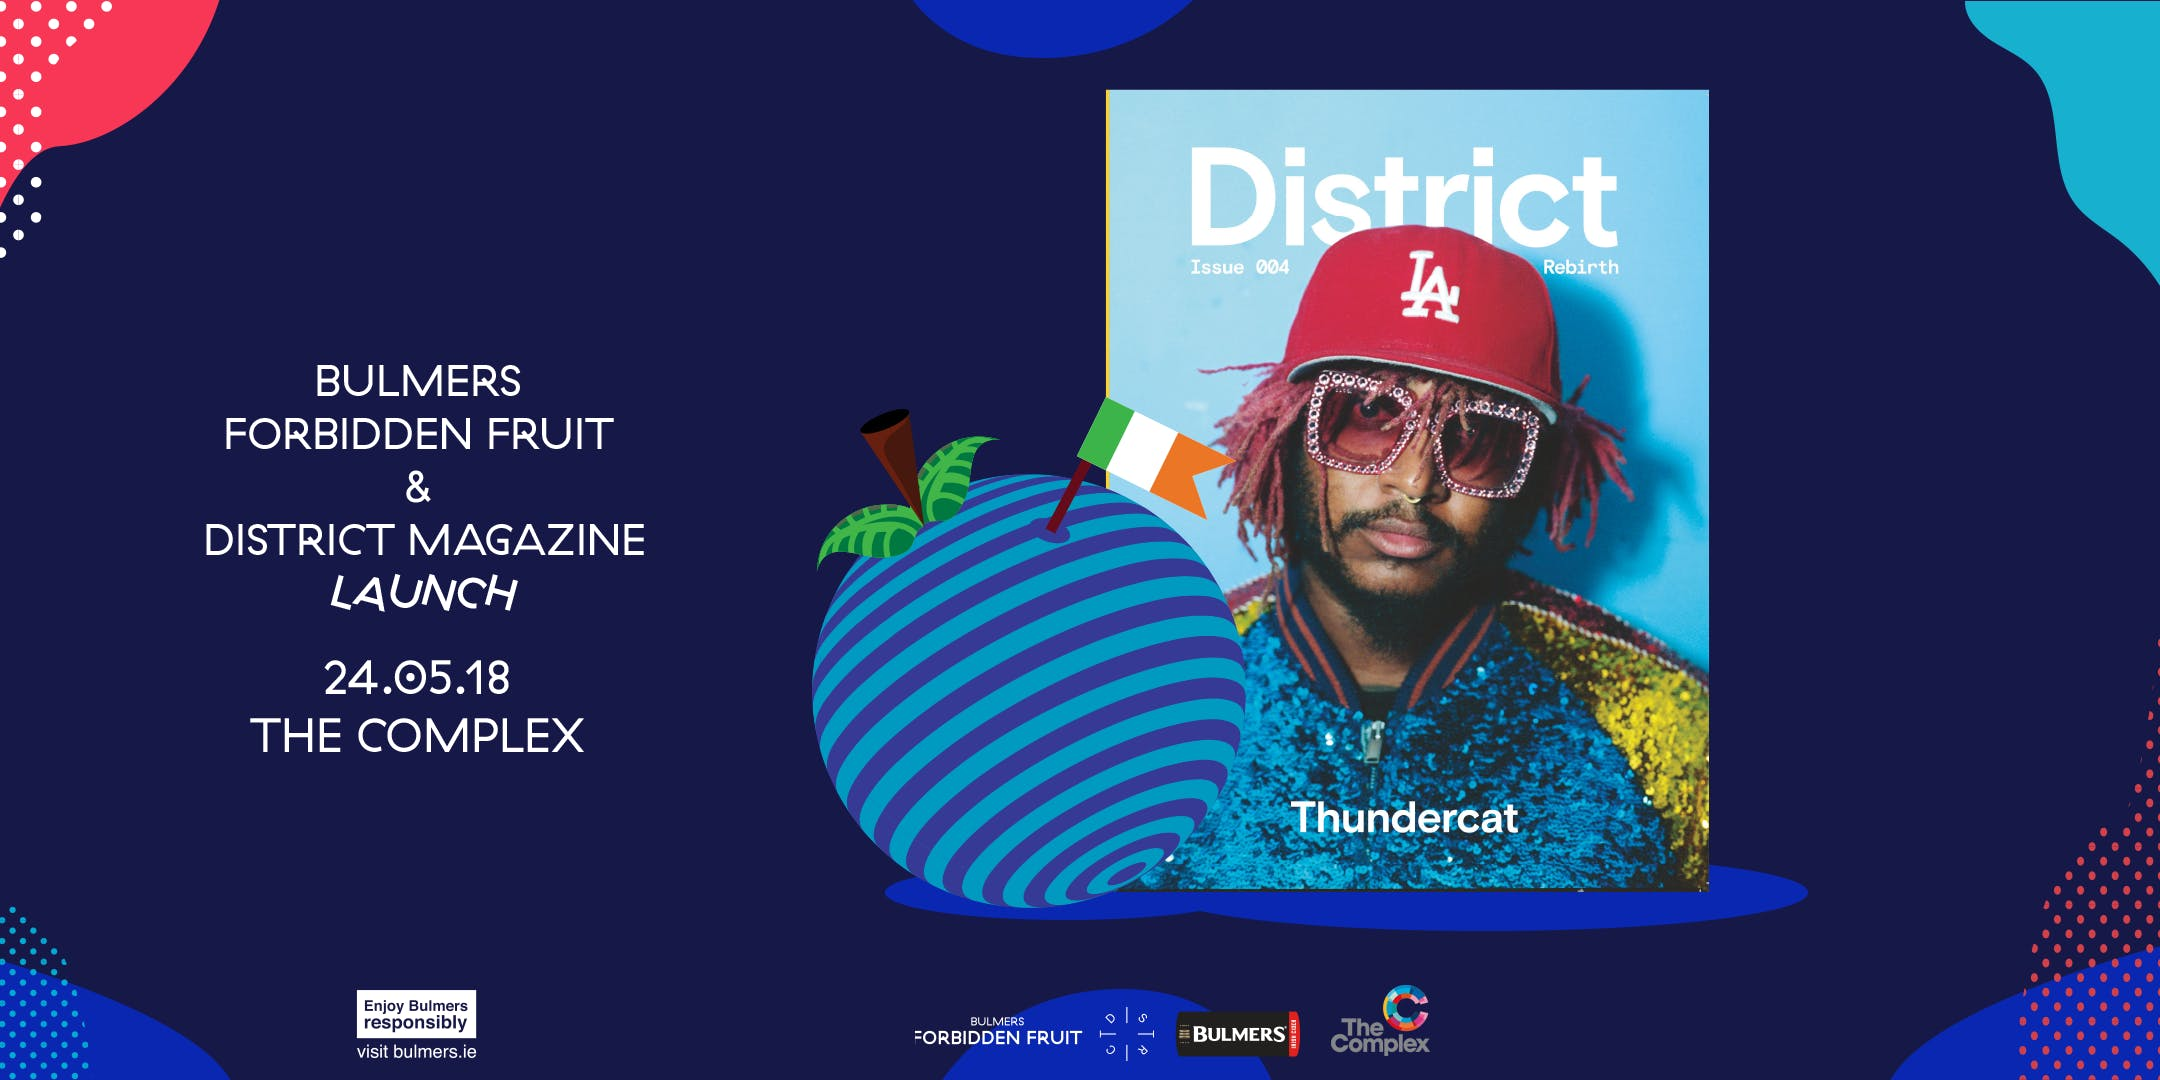 Bulmers Forbidden Fruit & District Magazine Issue 004 Launch